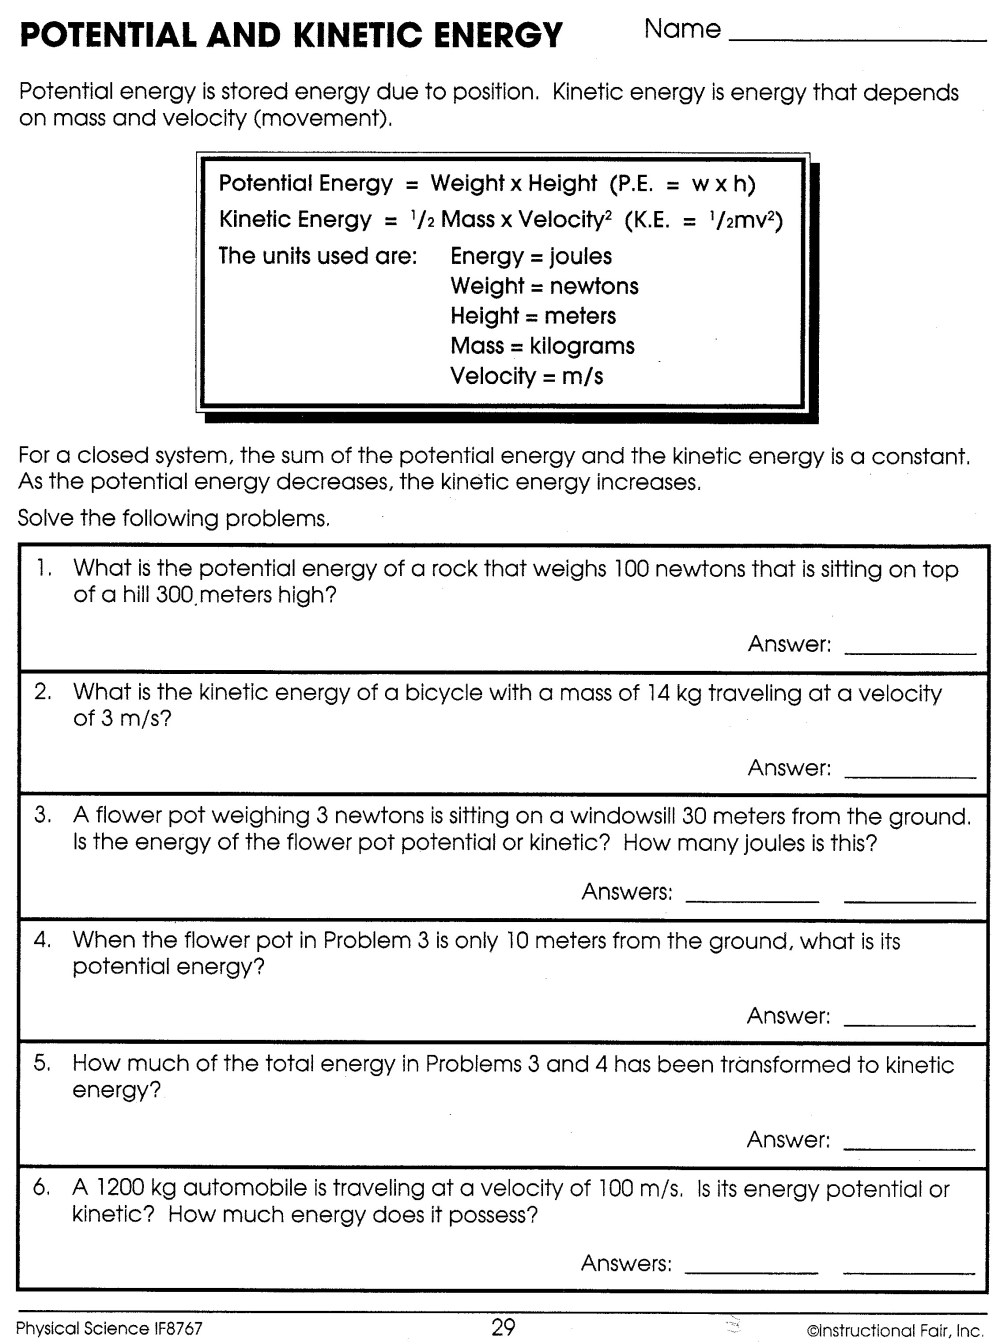 medium resolution of 32 Kinetic And Potential Energy Worksheet Answers Key - Worksheet Resource  Plans